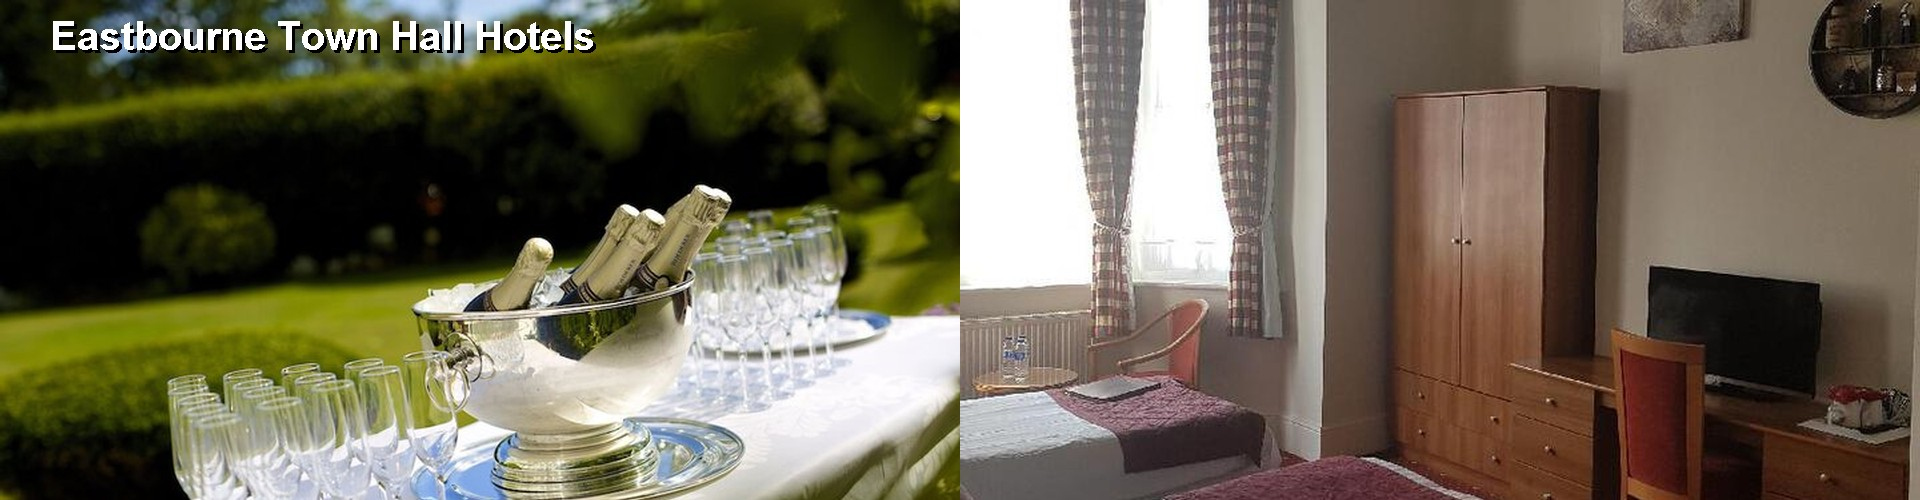 5 Best Hotels near Eastbourne Town Hall